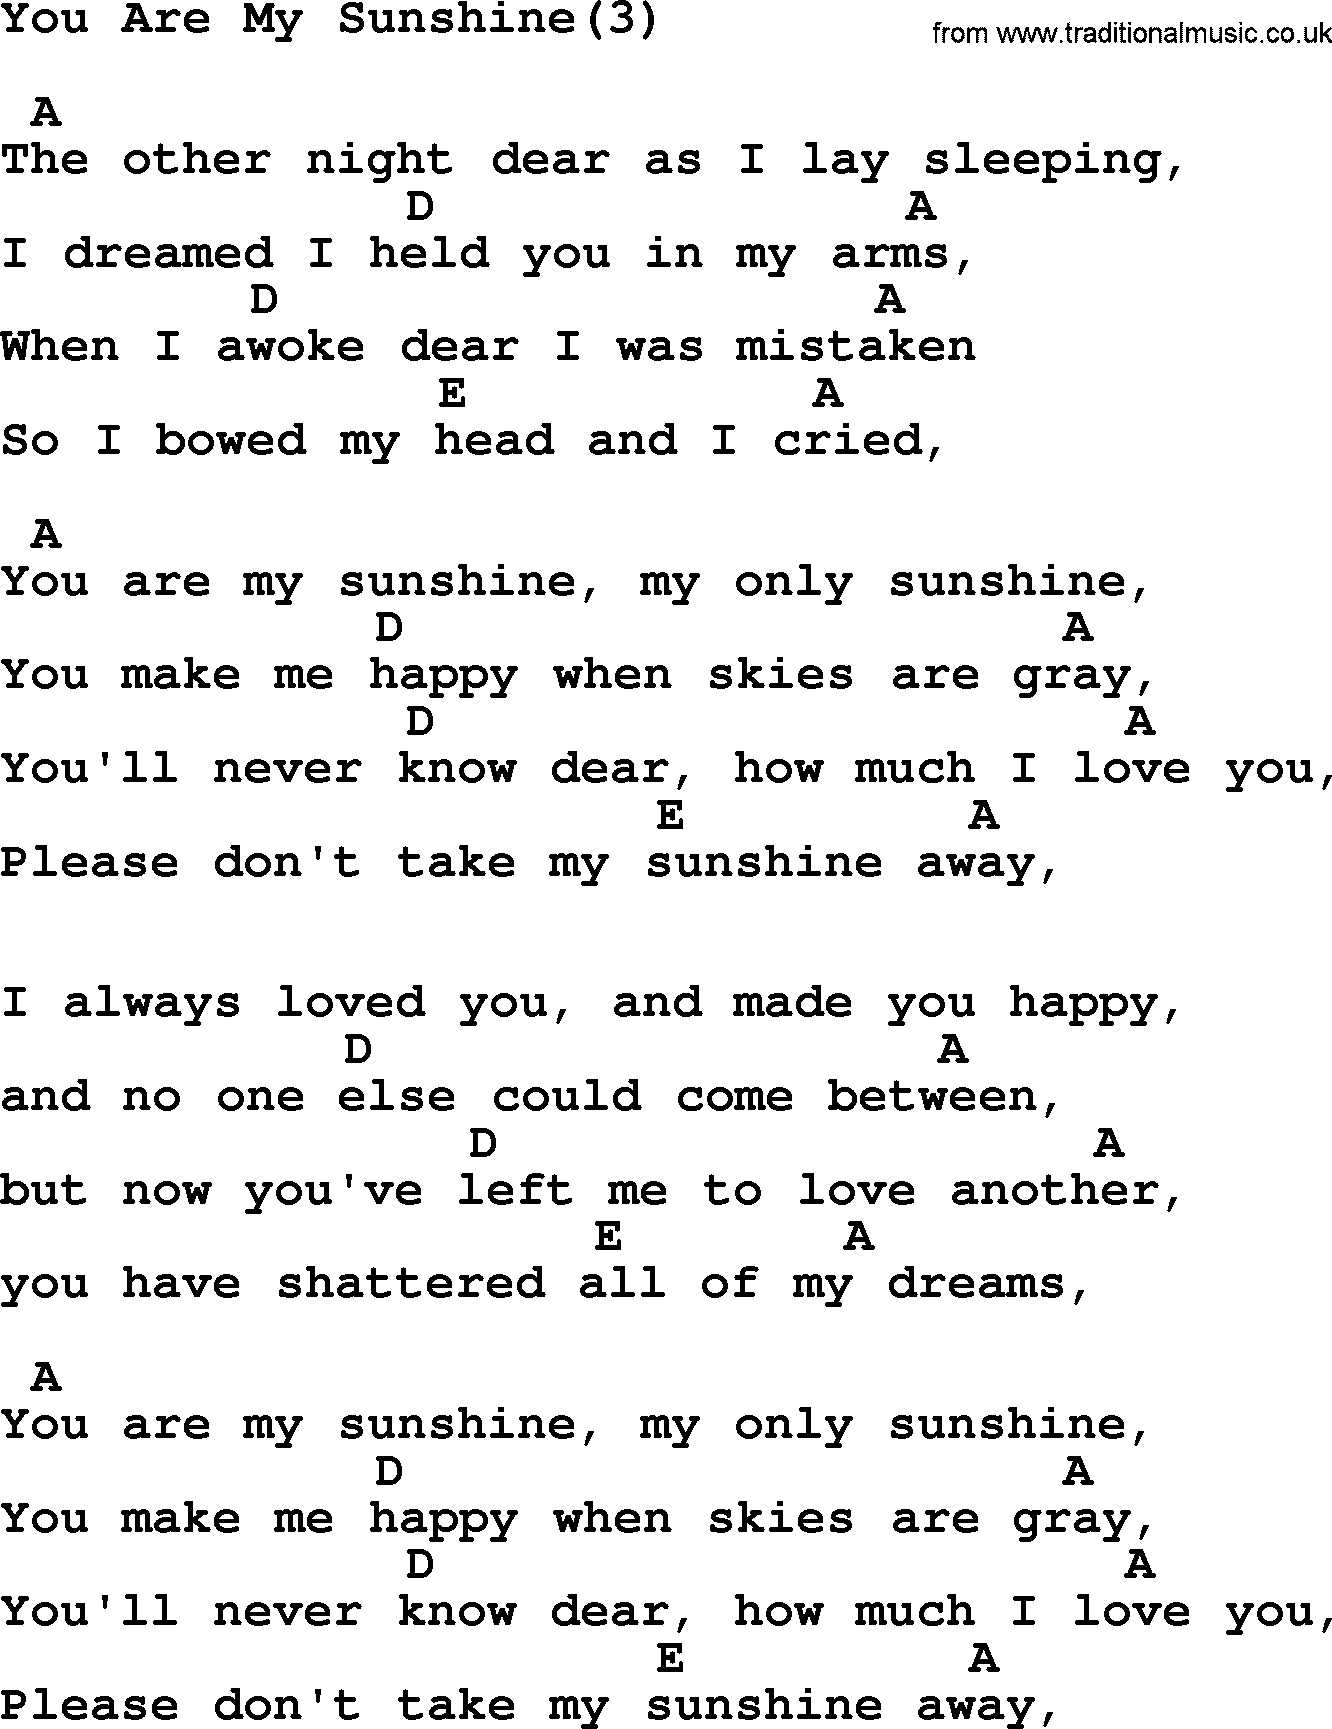 Johnny Cash song: You Are My Sunshine(3), lyrics and chords